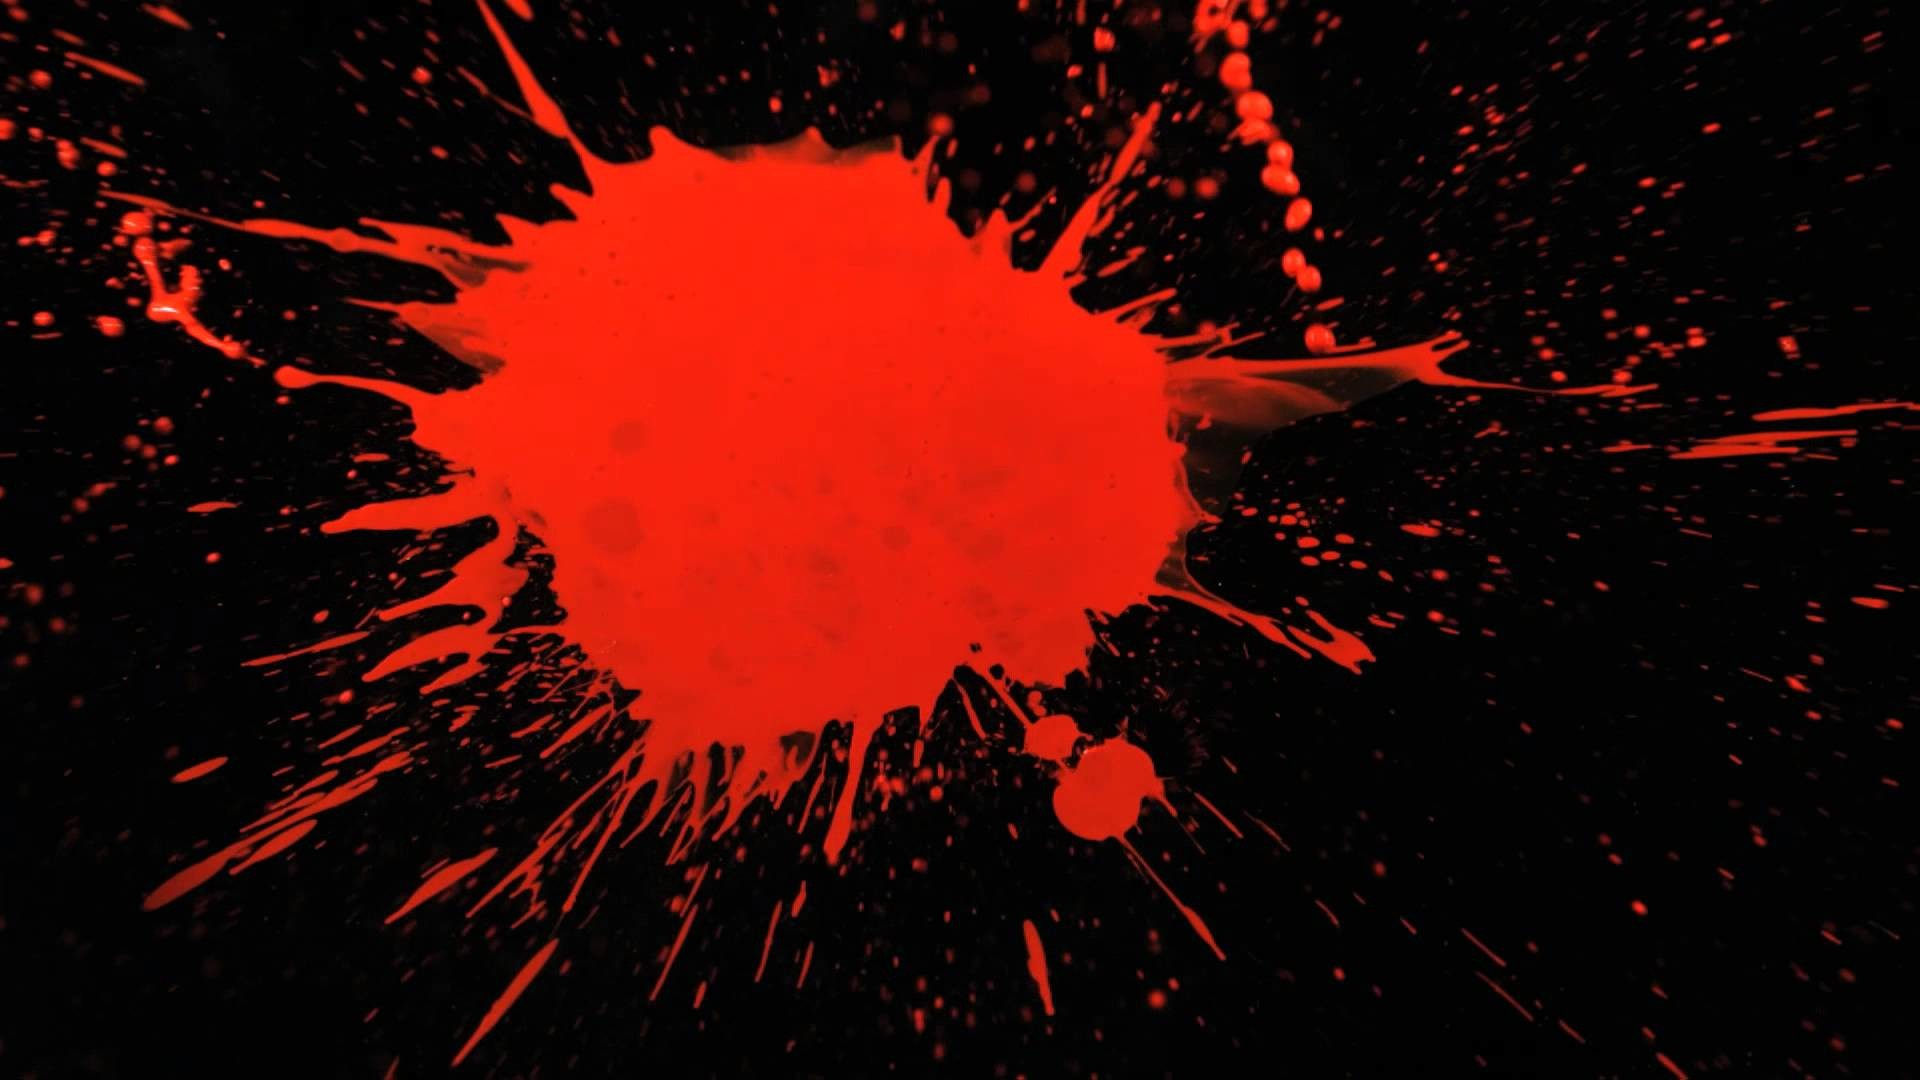 Slow Motion Paint Splatter with Red Paint Splattering a Black Background in  HD Slow Mo Video View – YouTube